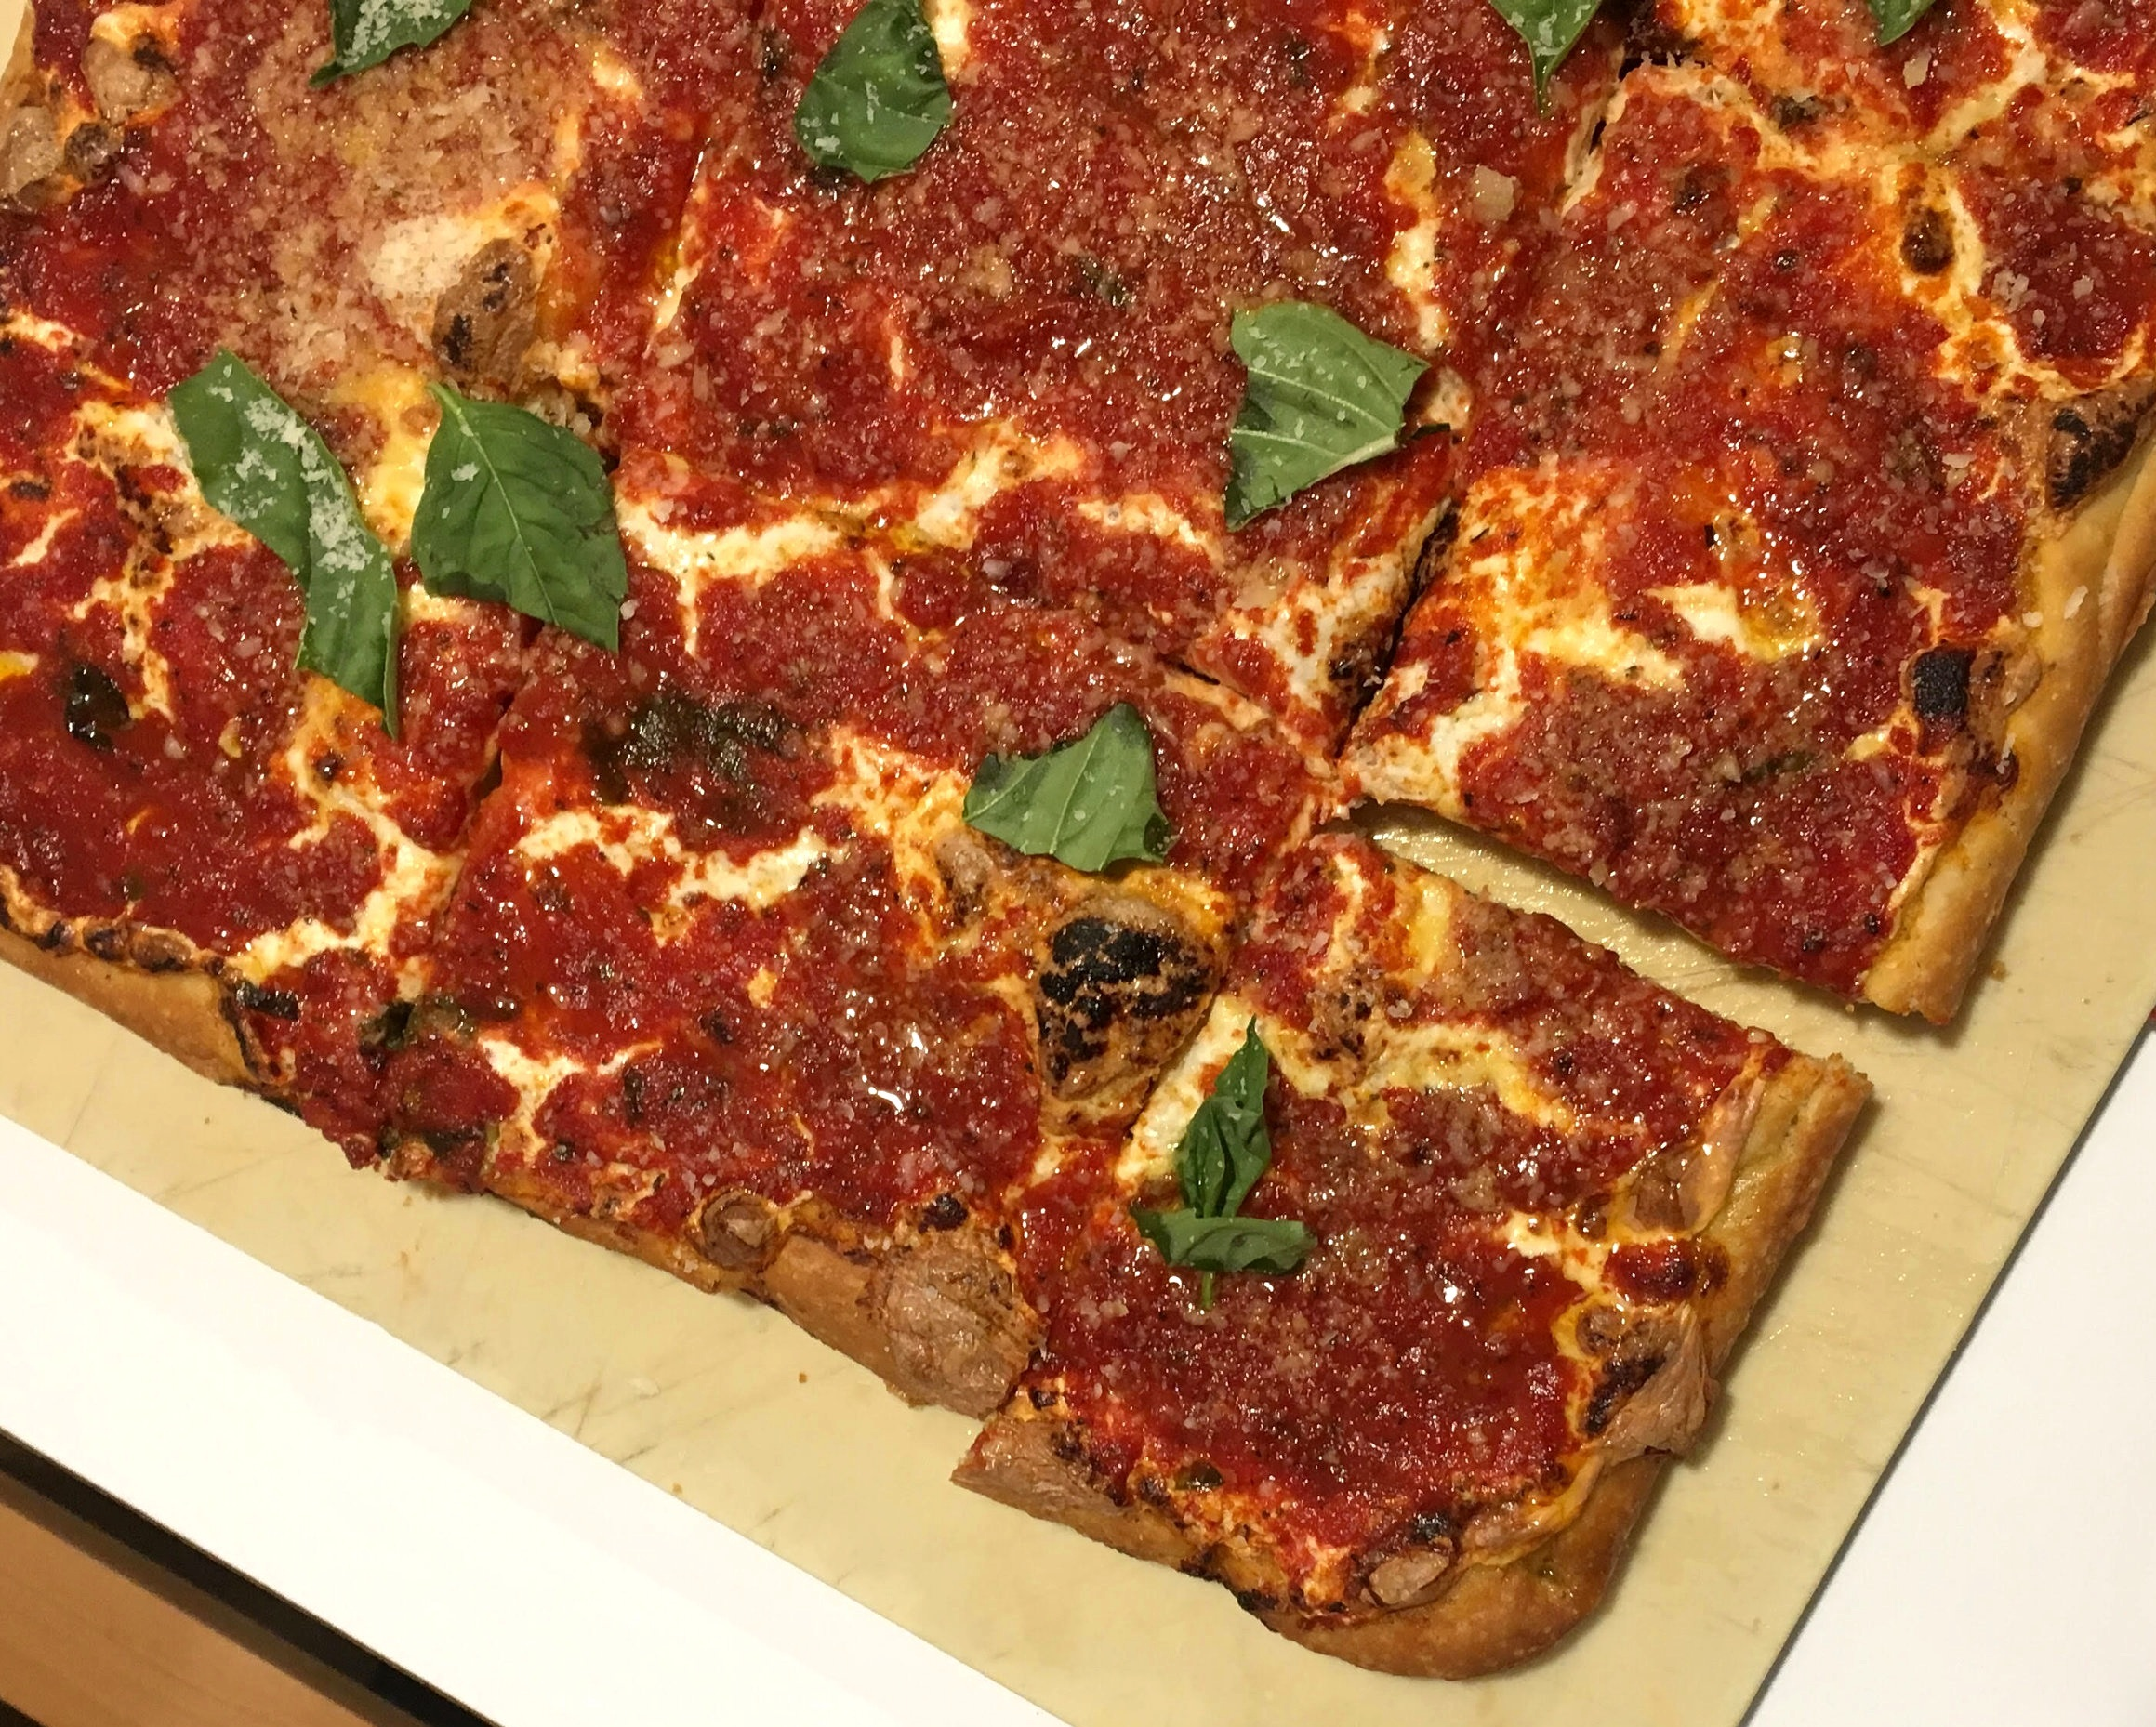 PIZZA NIGHT - EVERY TUESDAY, 4 - 7 PMSLICE & (SPECIAL SELECTION OF) BEER $6SLICE & SODA $5